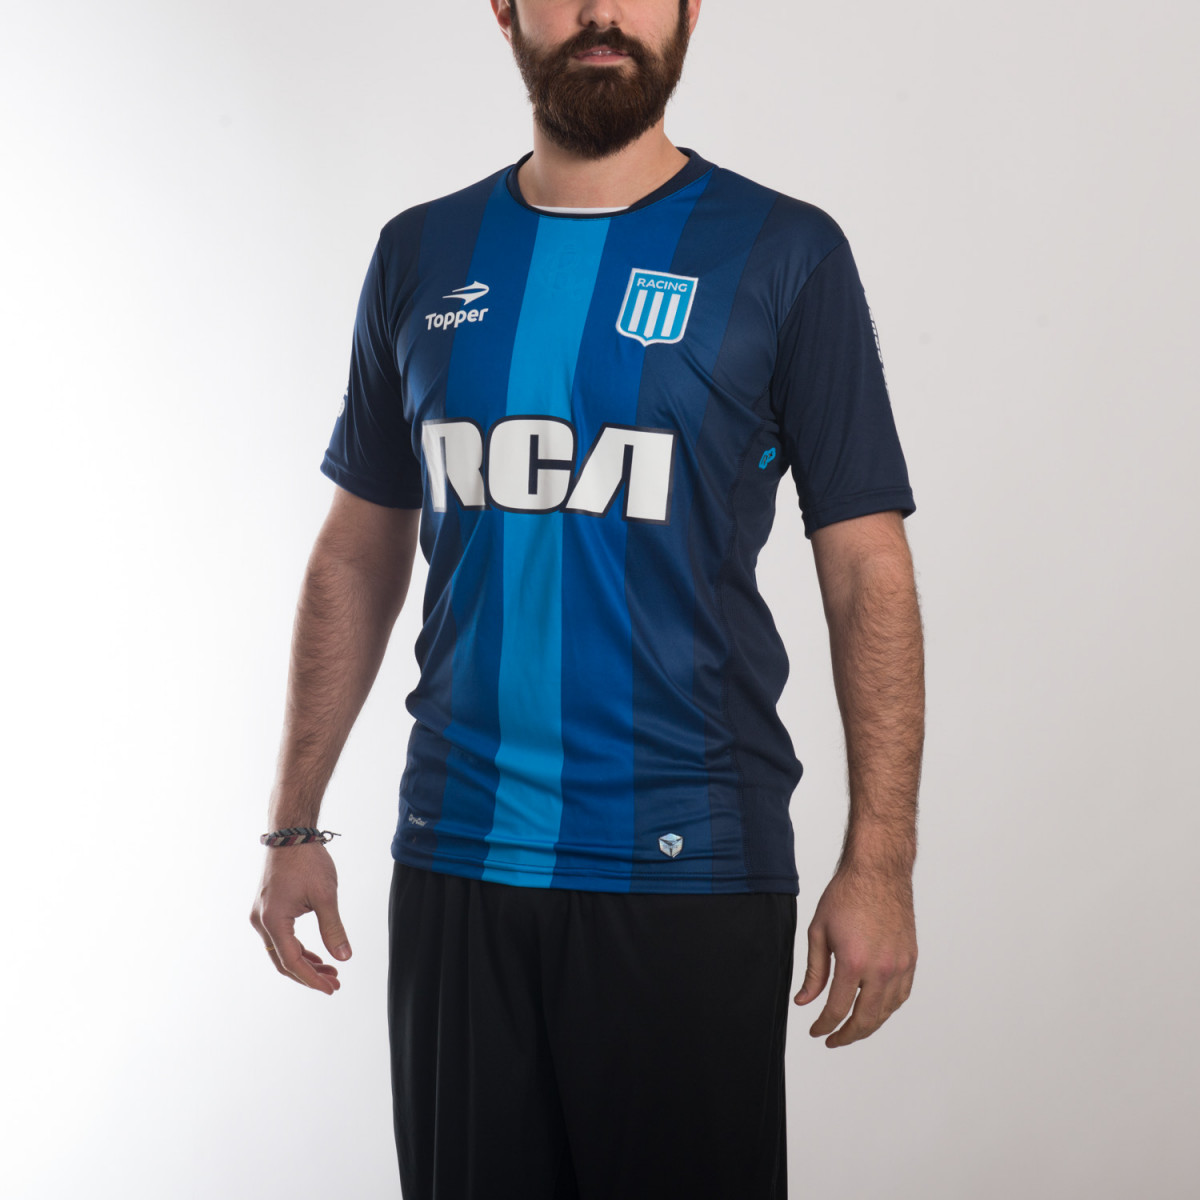 CAMISETA TOPPER ALTERNATIVA RACING